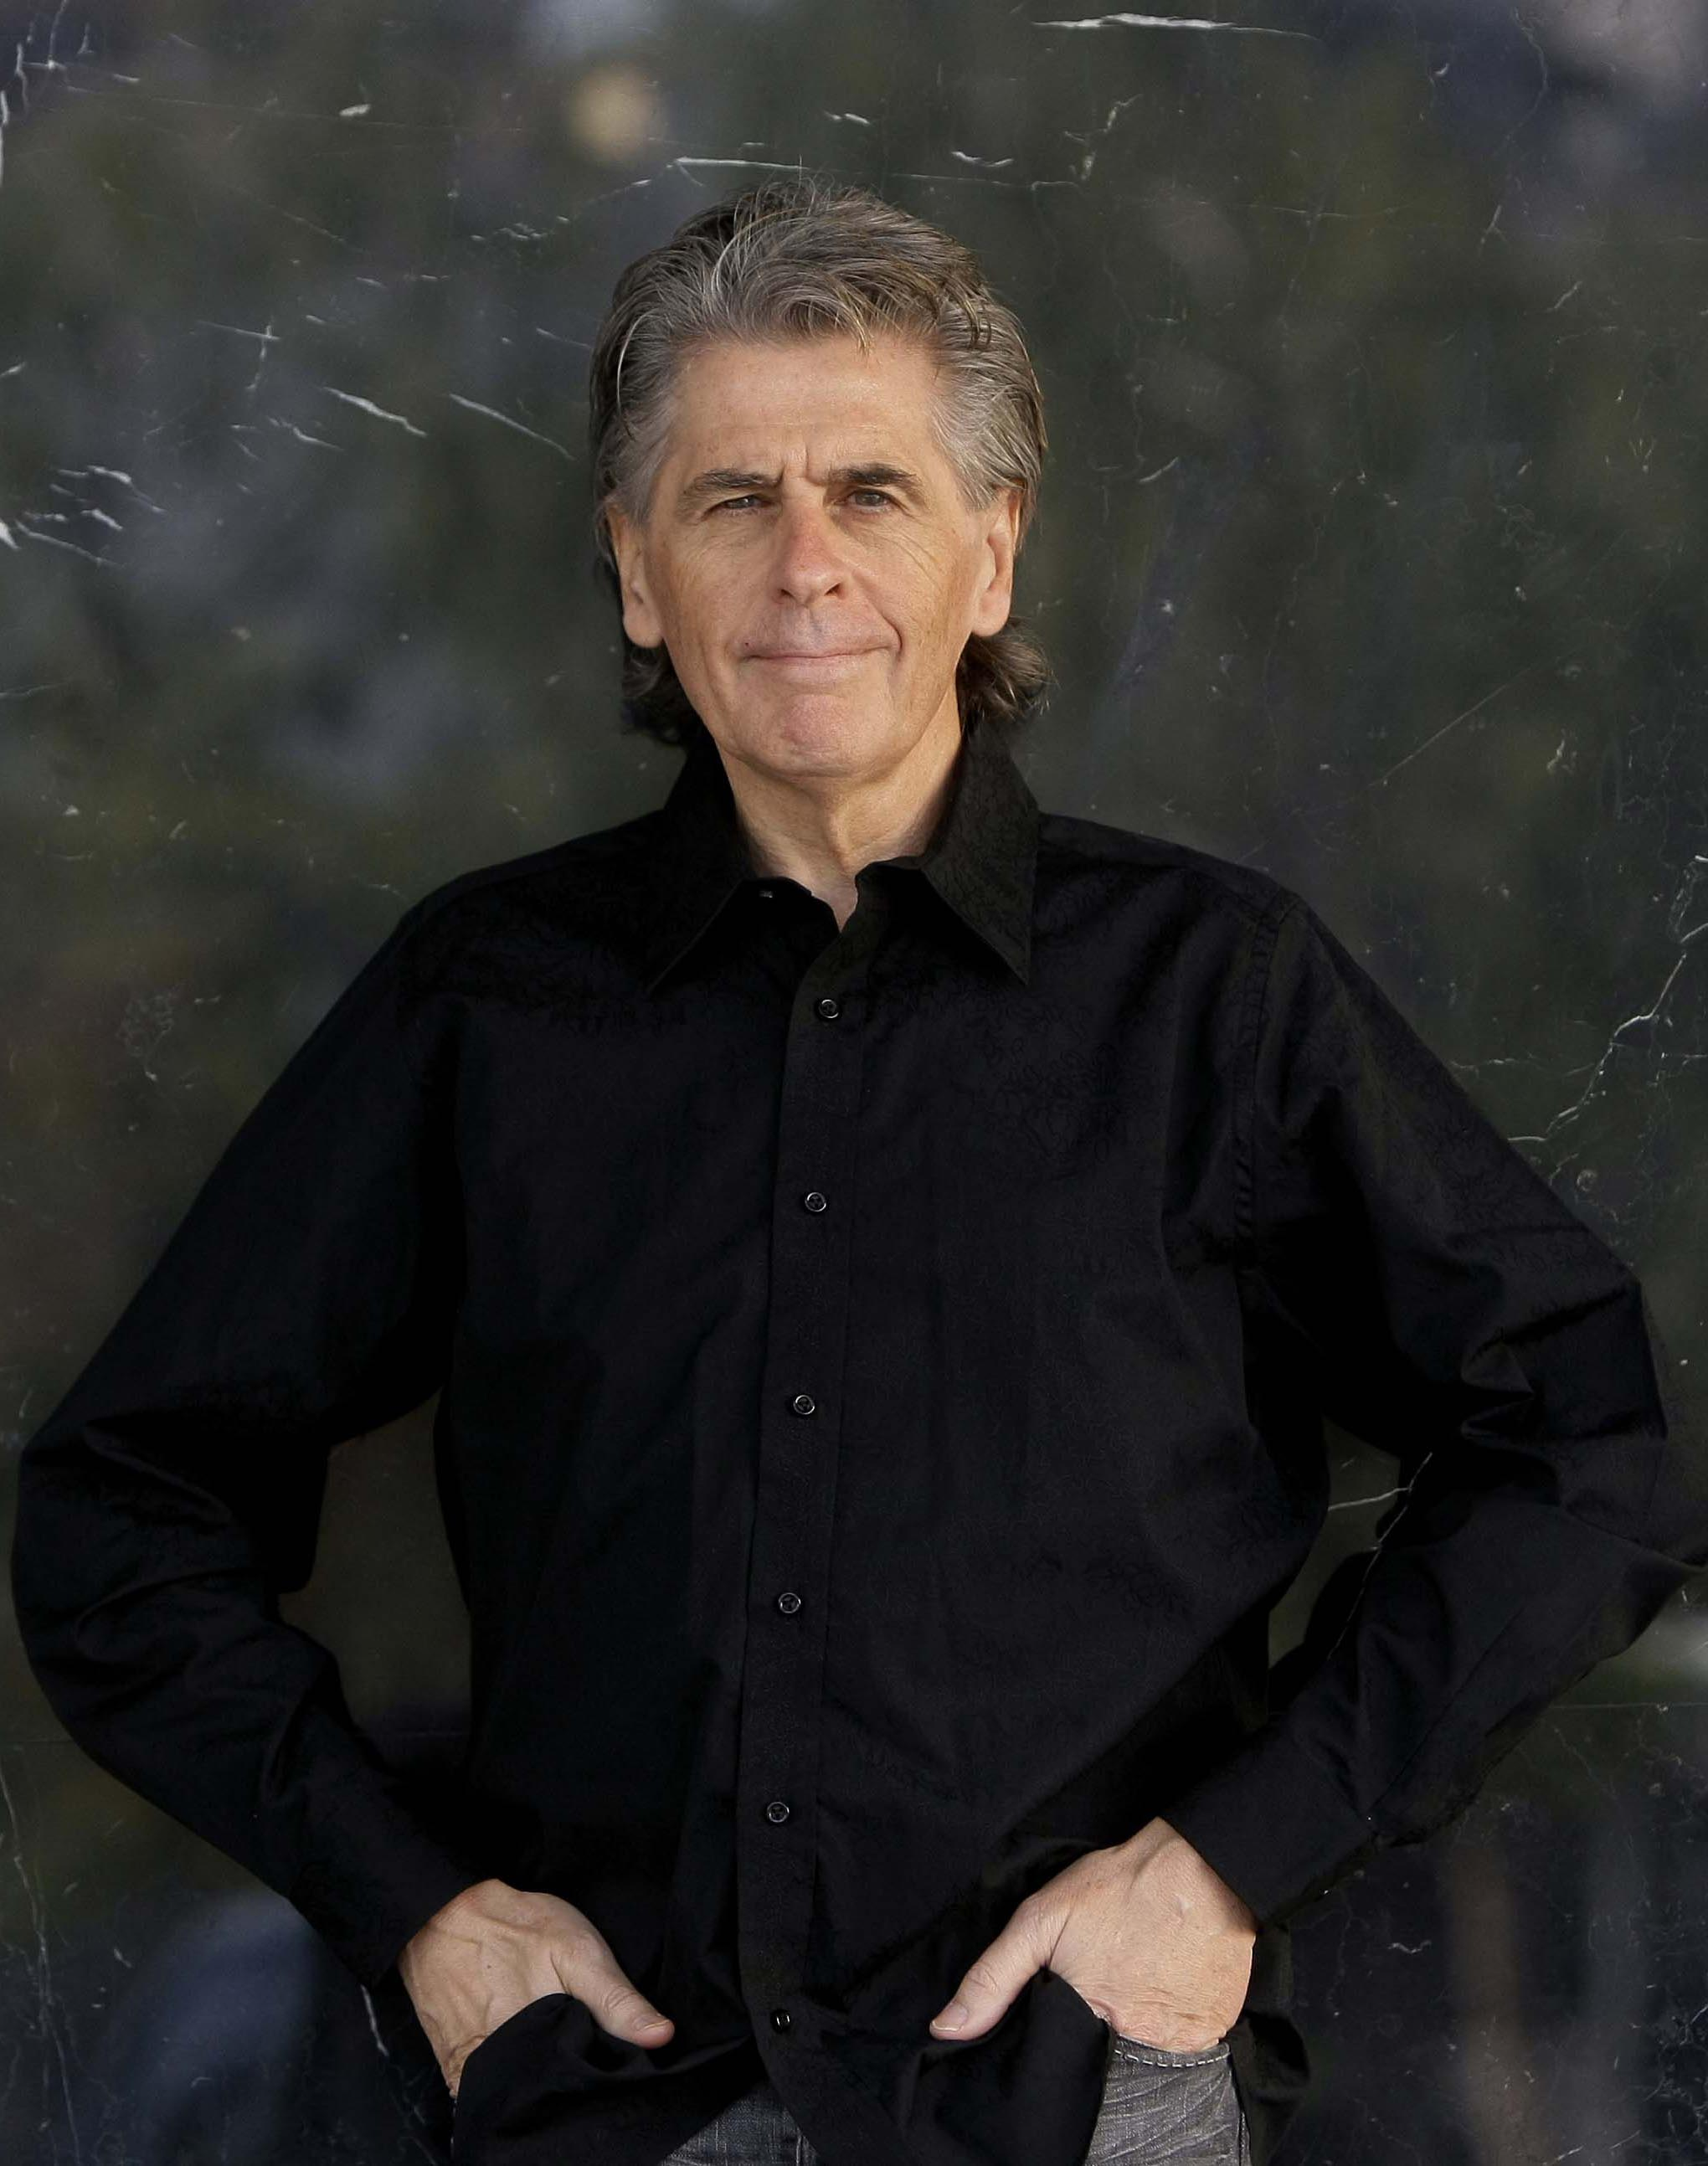 [picture of Keith Devlin]